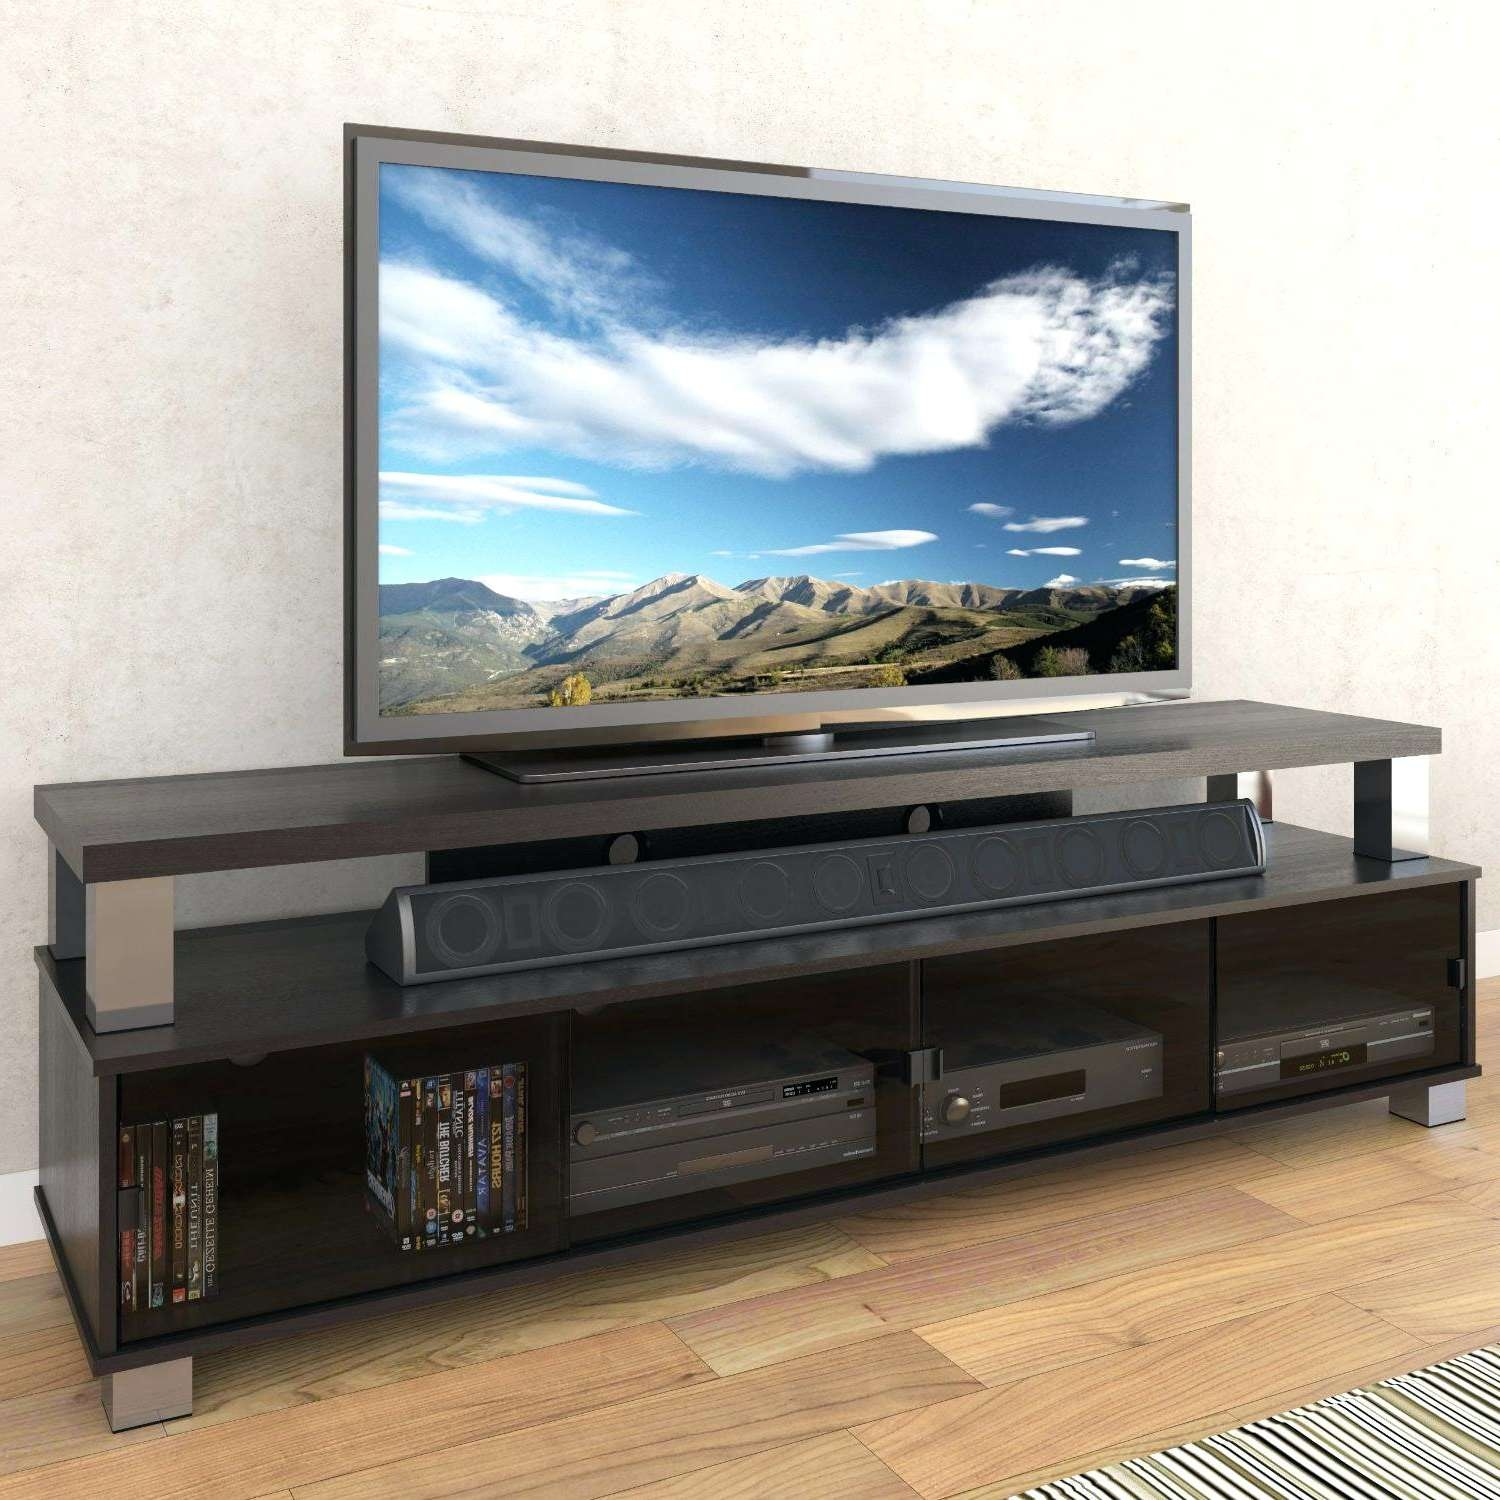 New Extra Long Tv Stand (35 Photos) | Bathgroundspath Inside Extra Long Tv Stands (View 11 of 15)